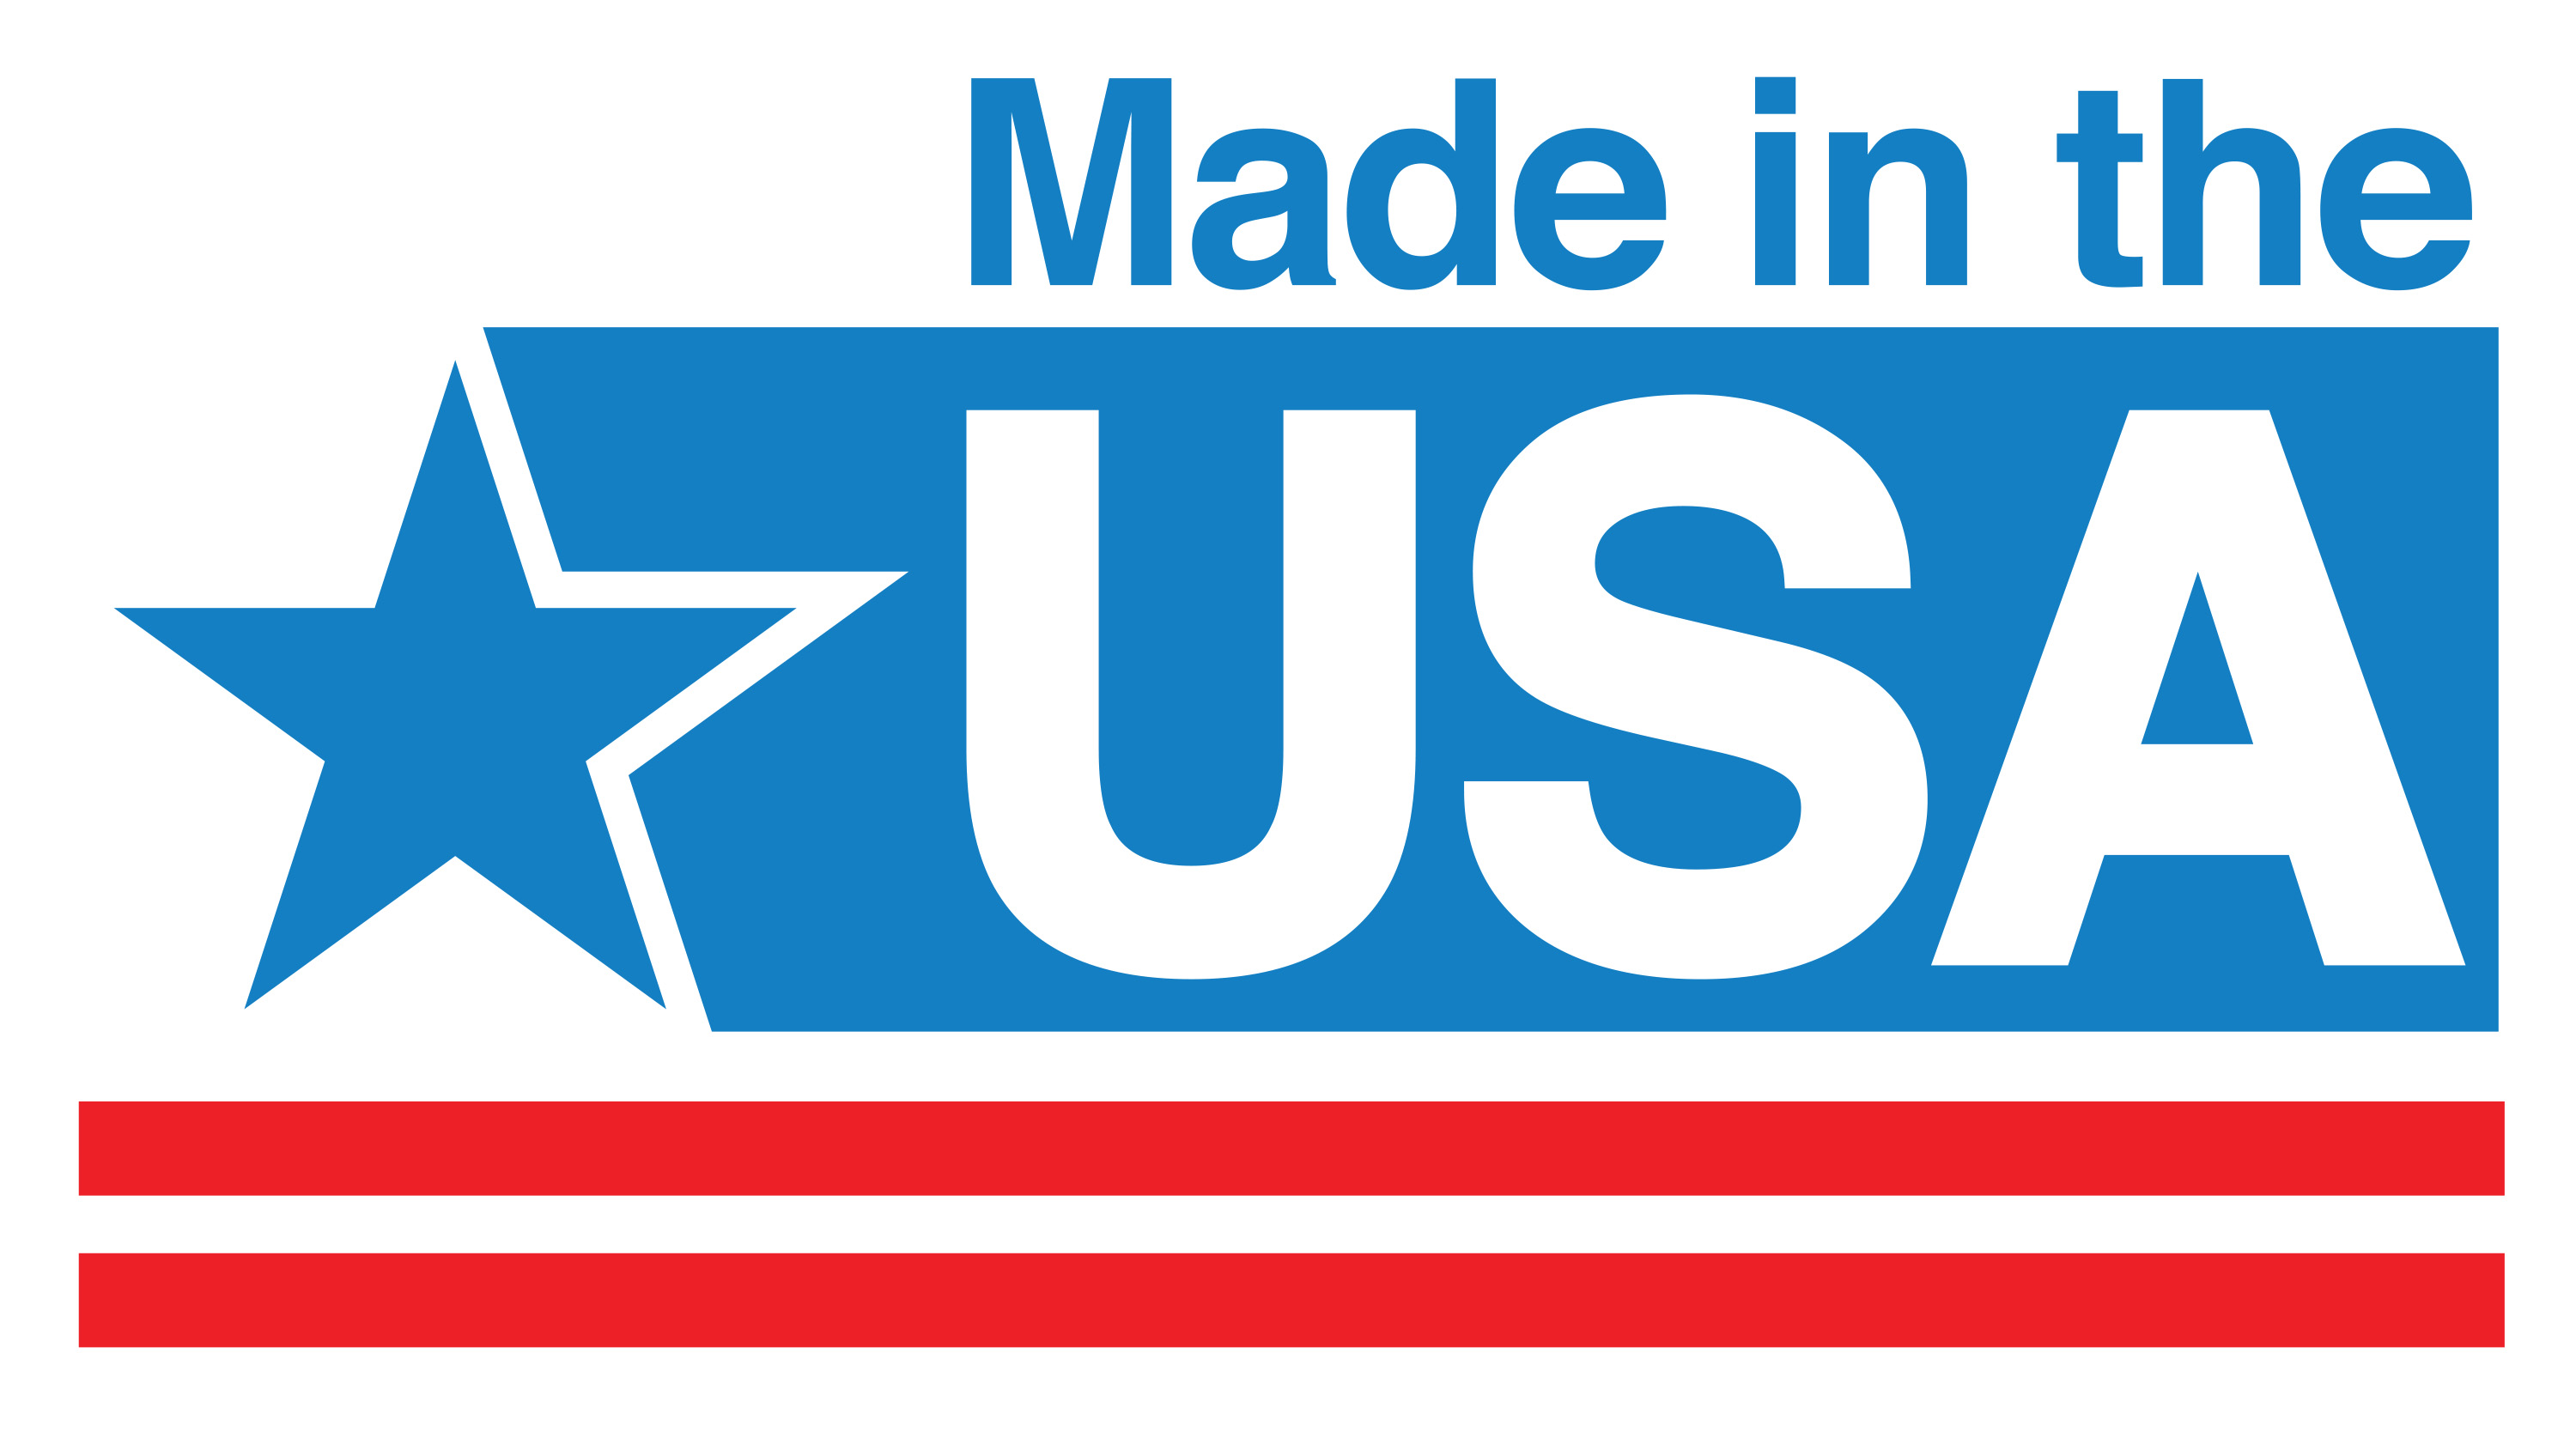 Made in USA 100%